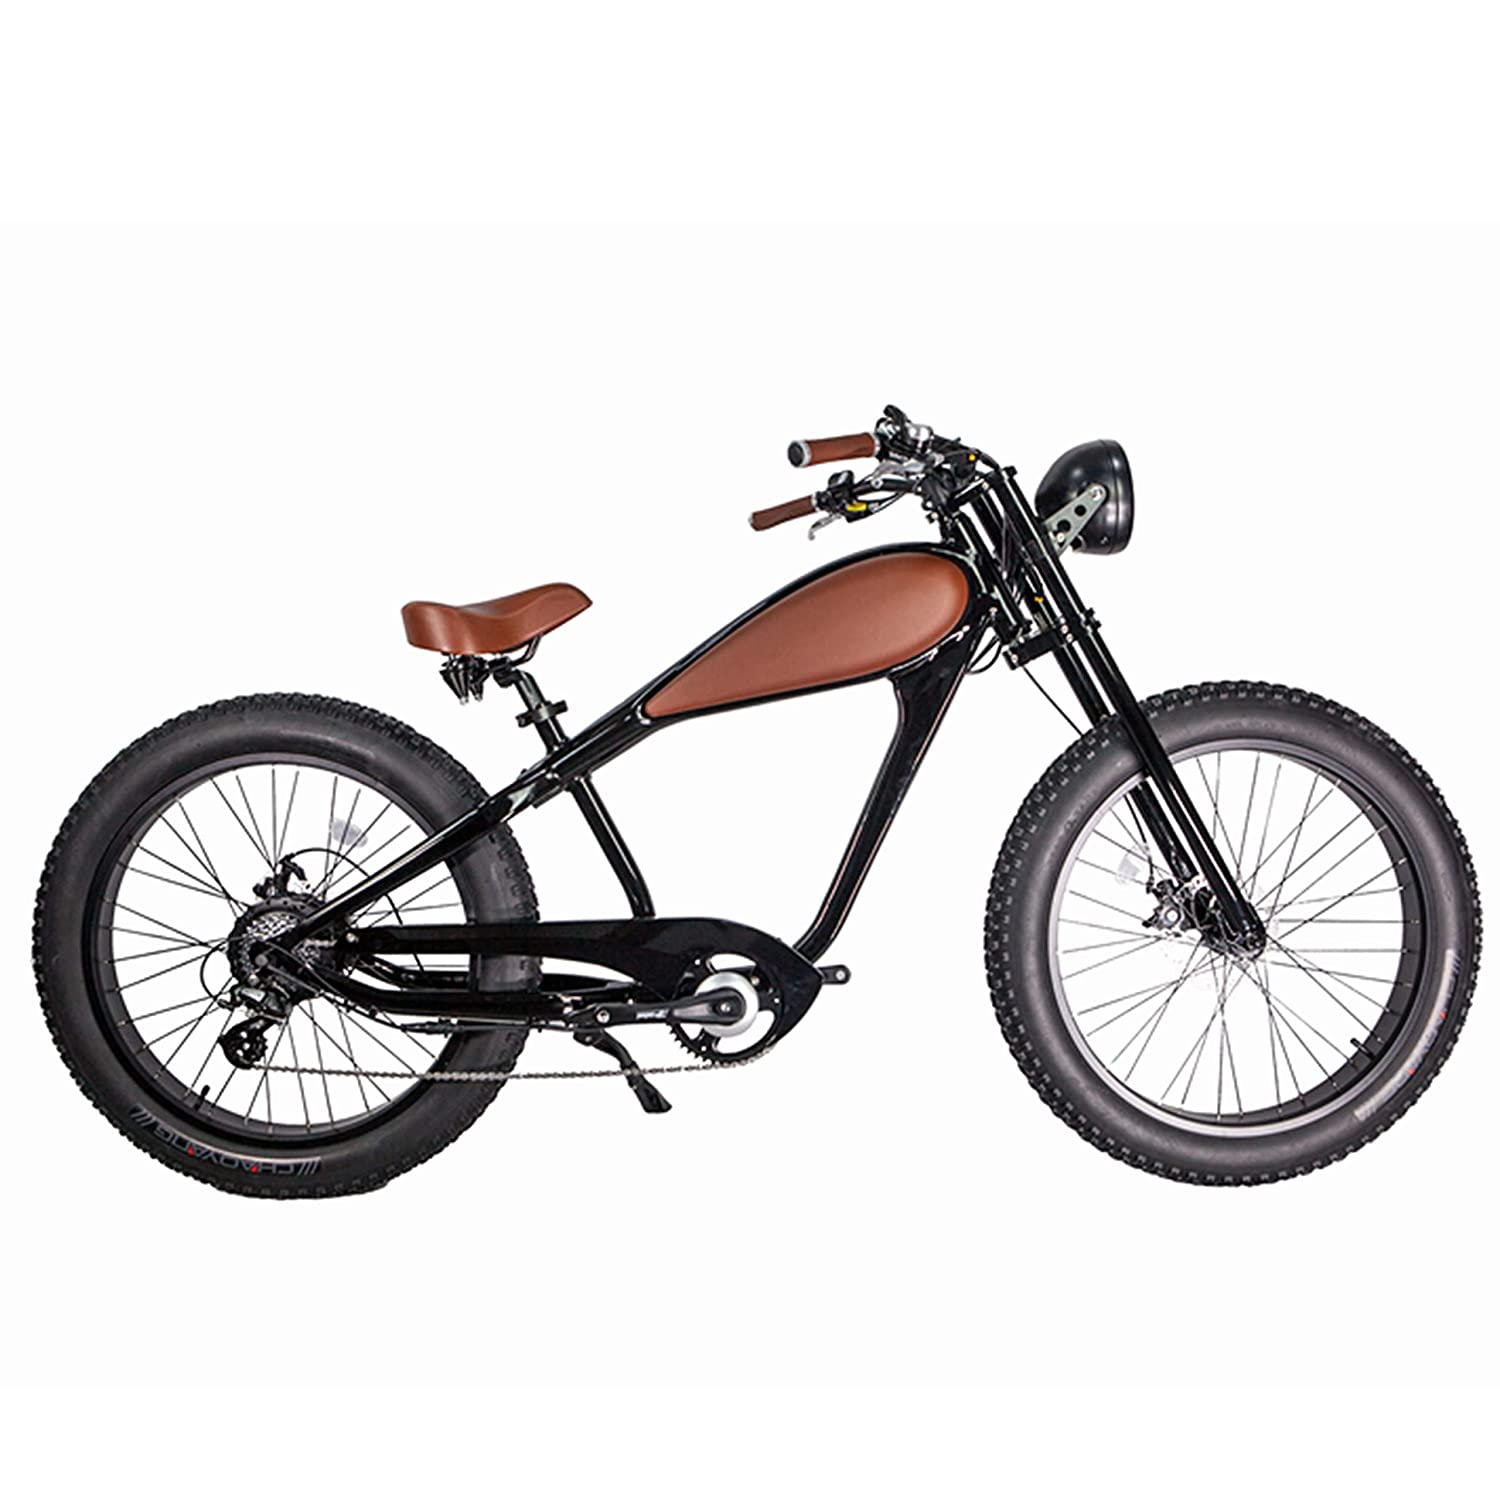 Electric Sports Bike >> Civi Bikes Vintage Electric Bike Fat Tire Sport Bicycle 750w Cafe Racer 7 Speed Gear 48v Battery With Max Speed To 28 Mph